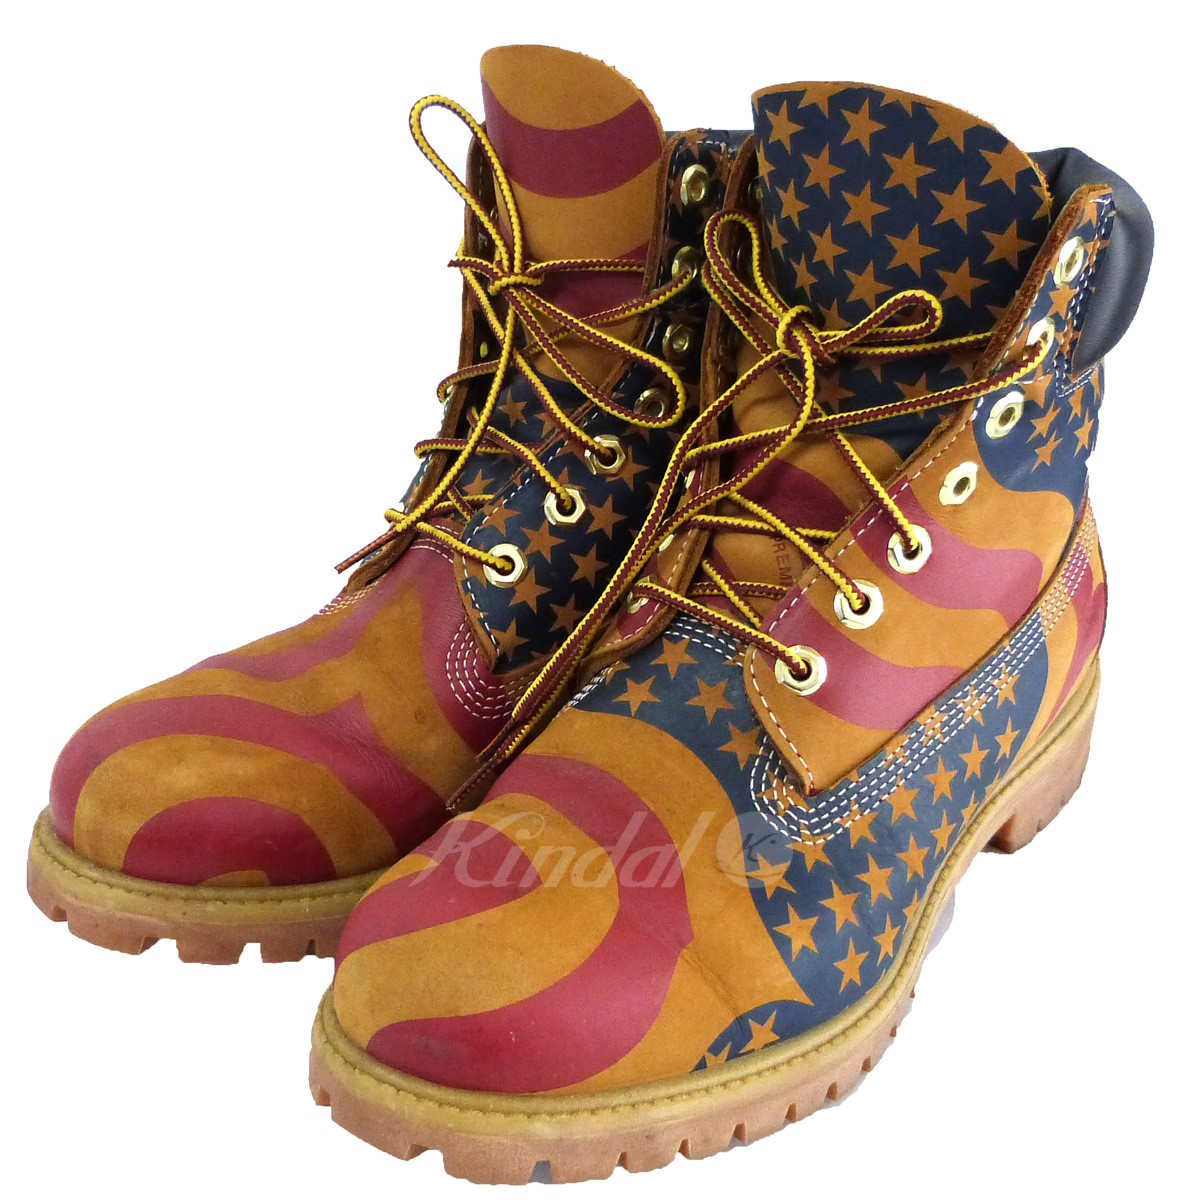 【中古】Supreme×Timberland 17AW「Stars And Stripe 6inch PremiumWaterproofBoot」 【送料無料】 【153218】 【KIND1641】